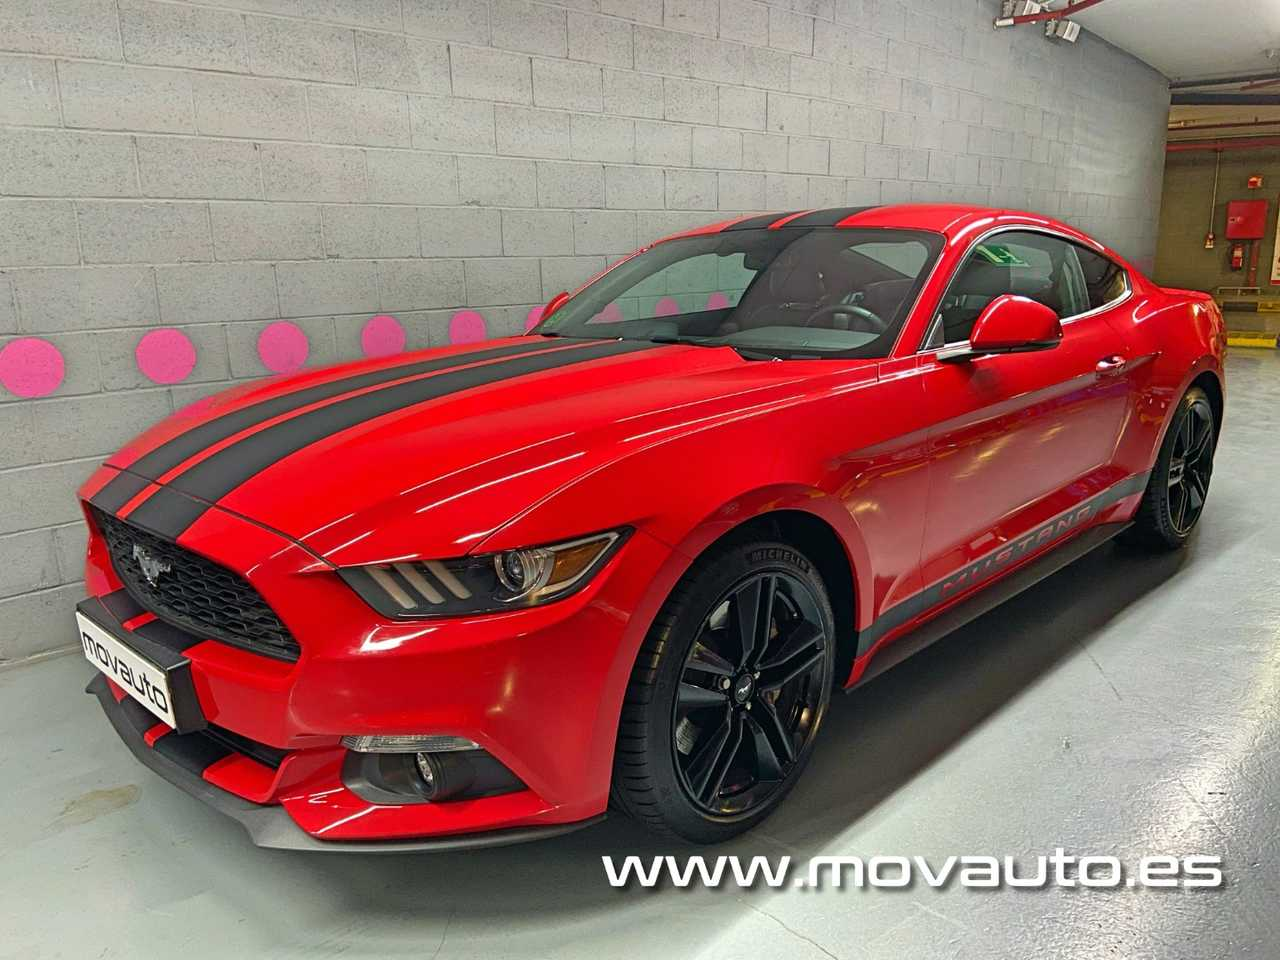 Ford Mustang 2.3 EcoBoost 314cv   - Foto 1